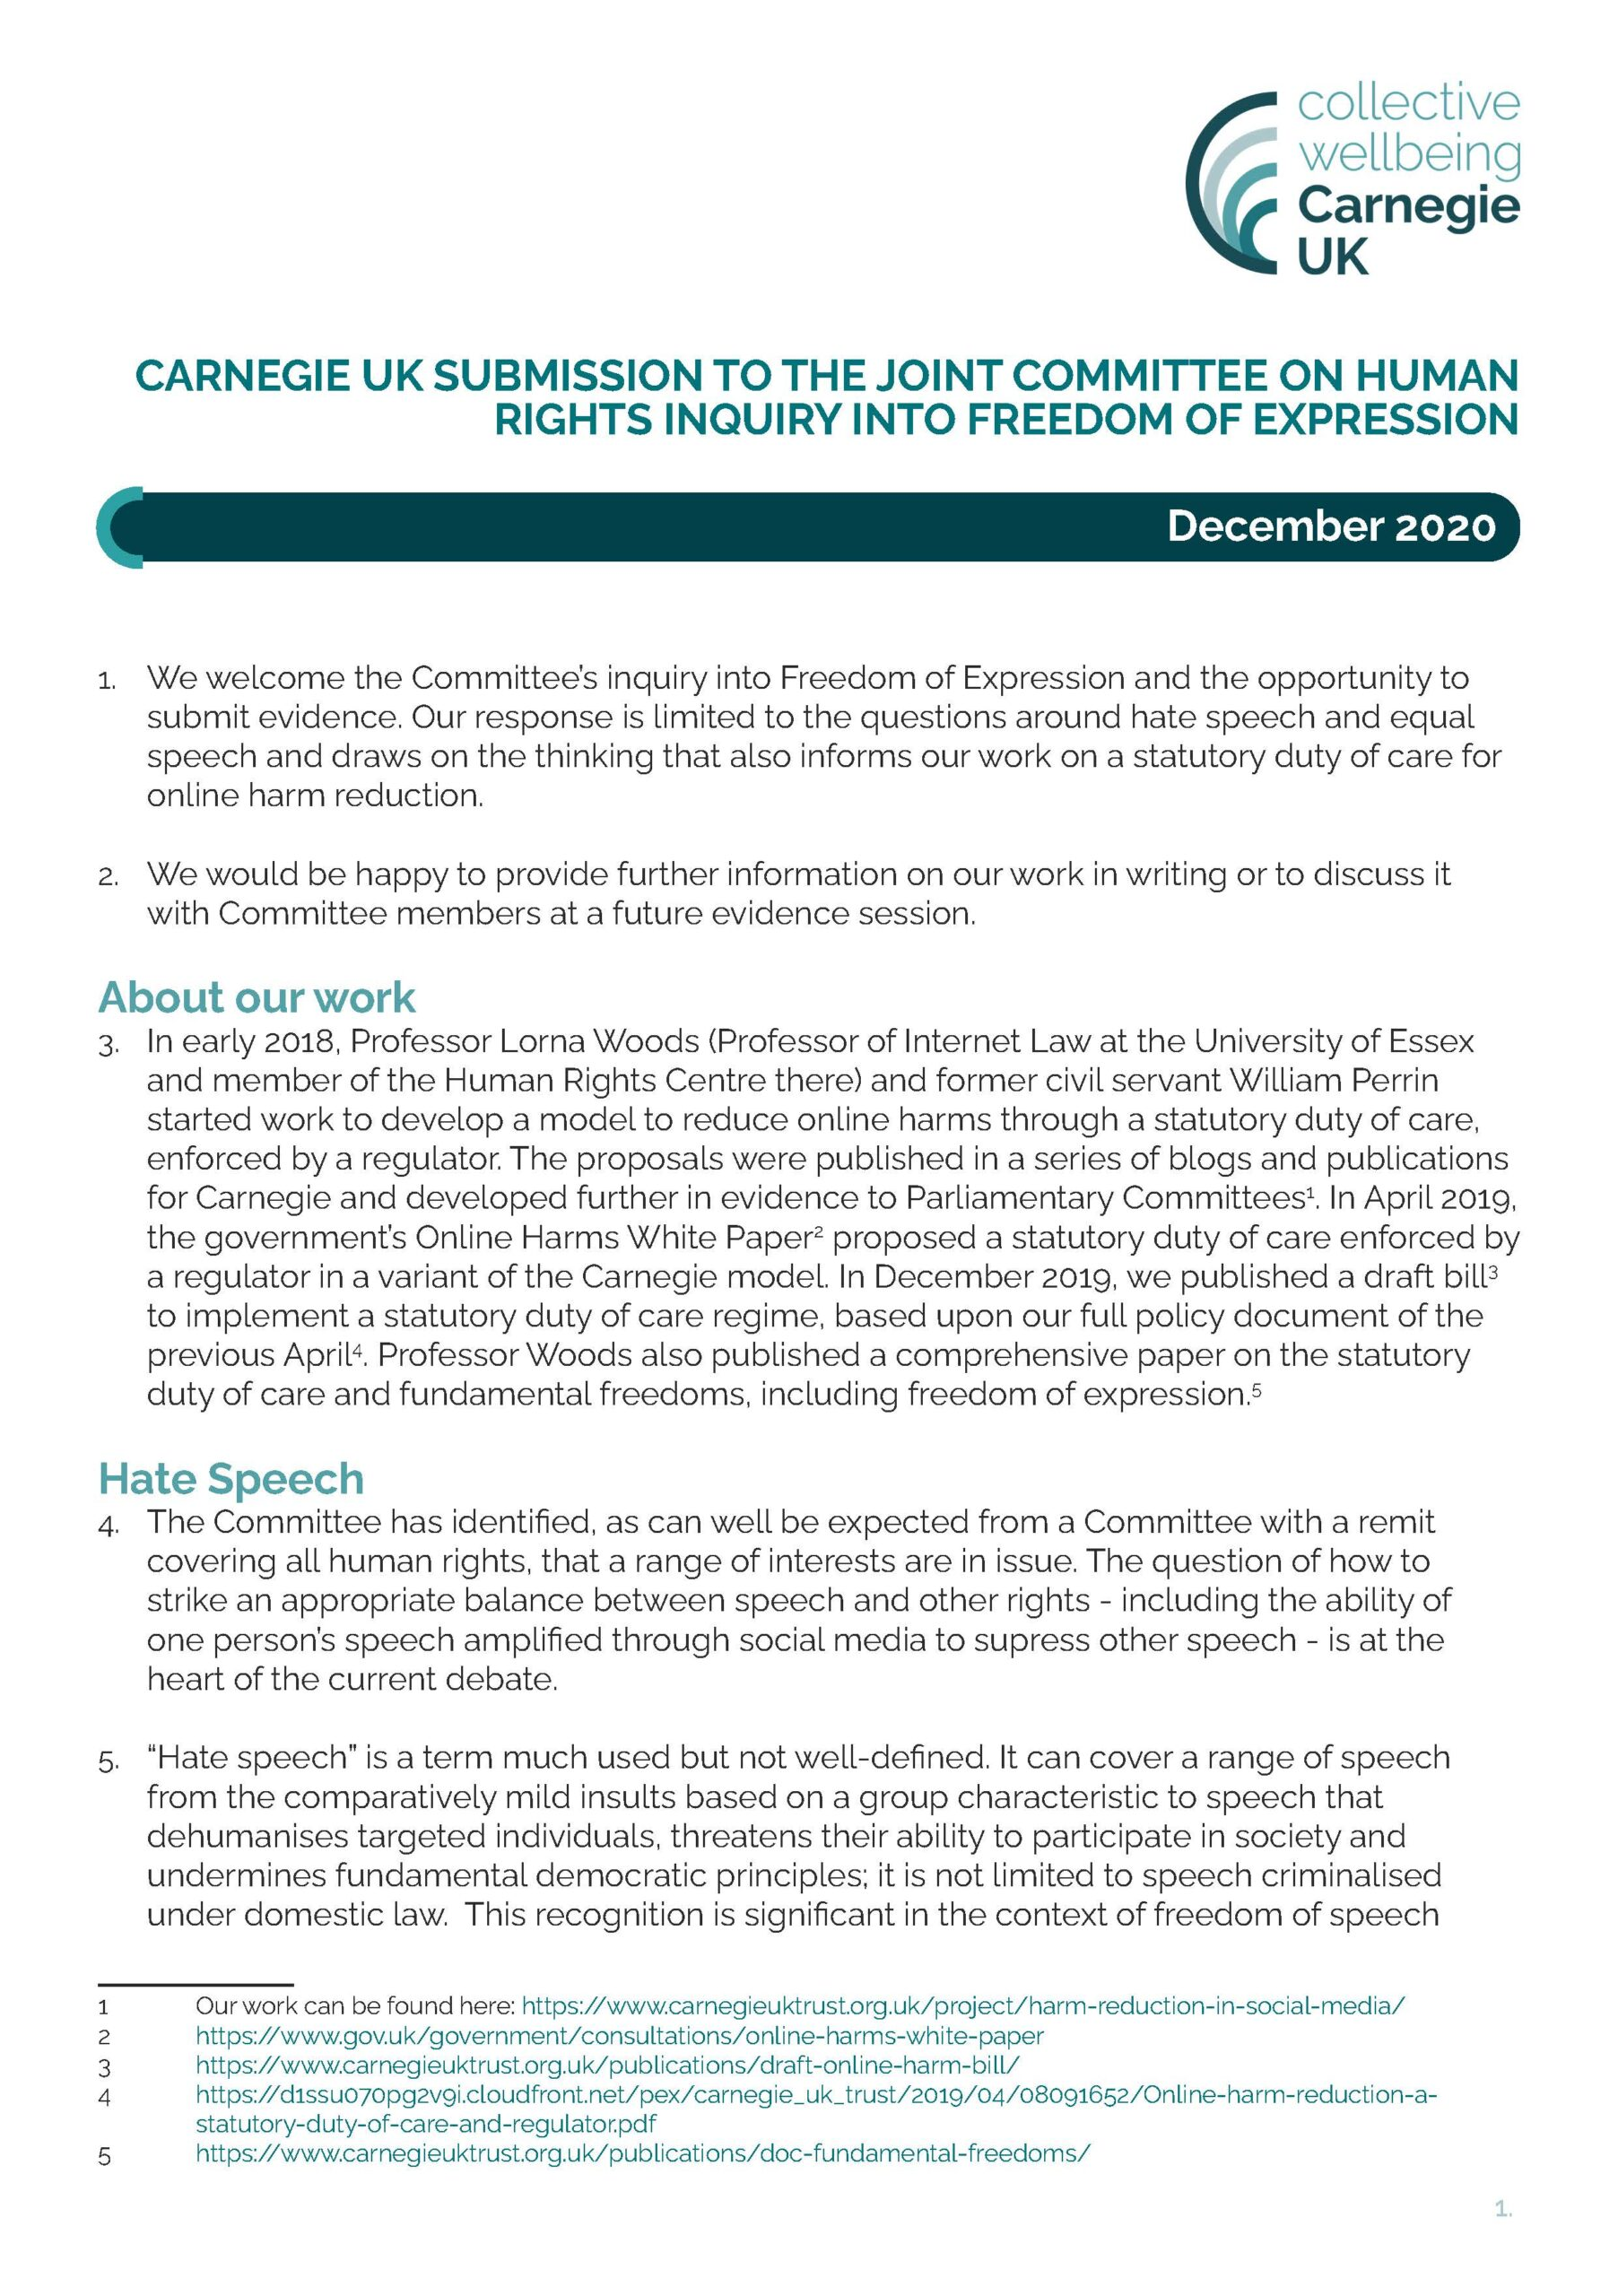 Submission to the Joint Committee on Human Rights Inquiry into Freedom of Expression